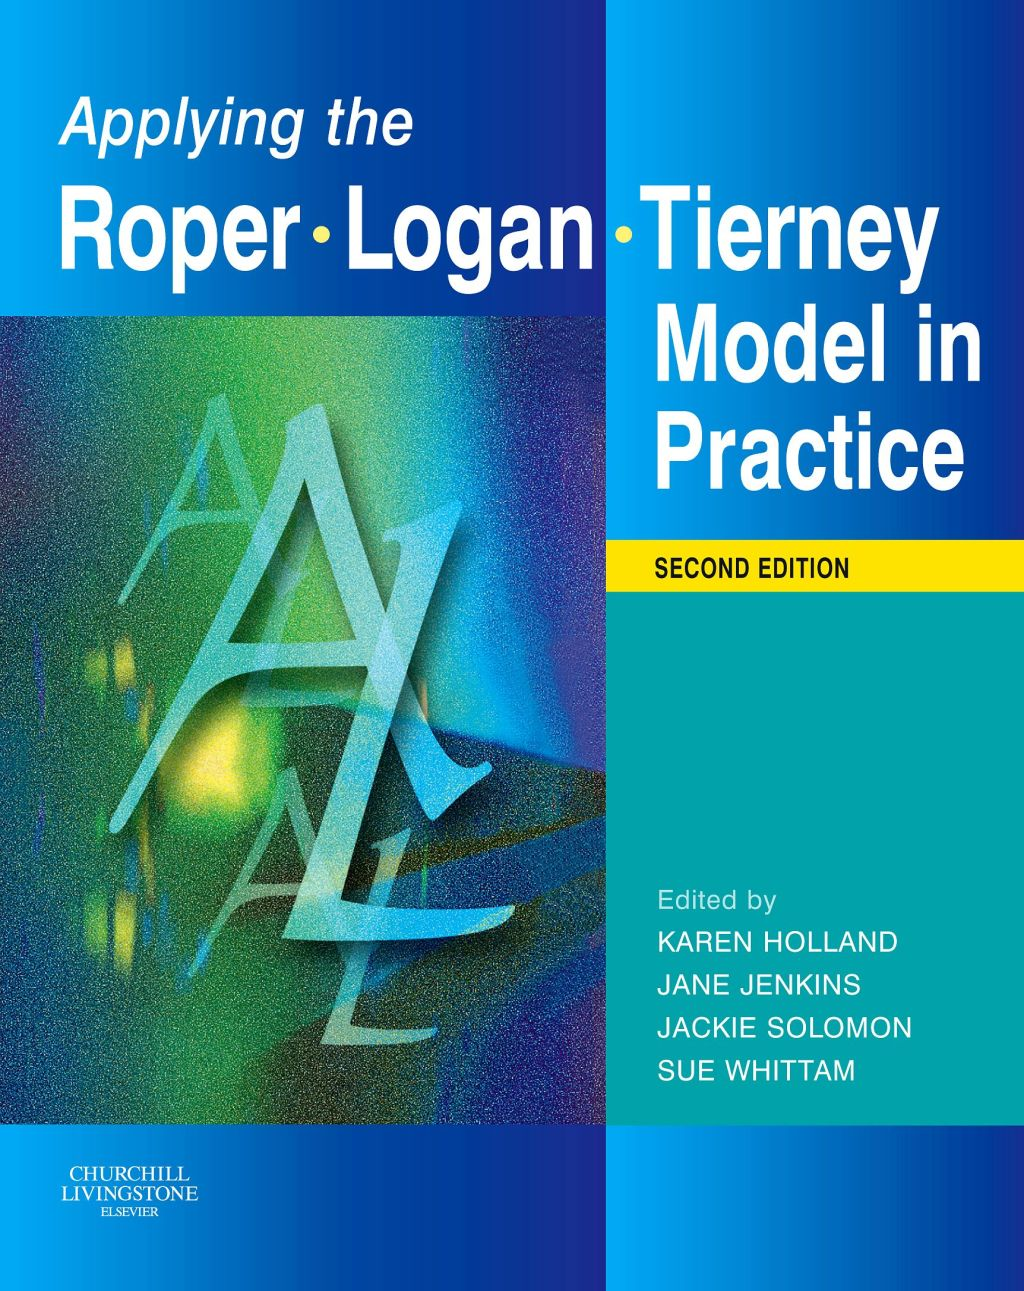 essay on roper logan and tierney Roper logan and tierney of this essay is to demonstrate the assessment process of a patient using the roper logan and tierney (rlt) model of nursing framework, and to show how the nursing.